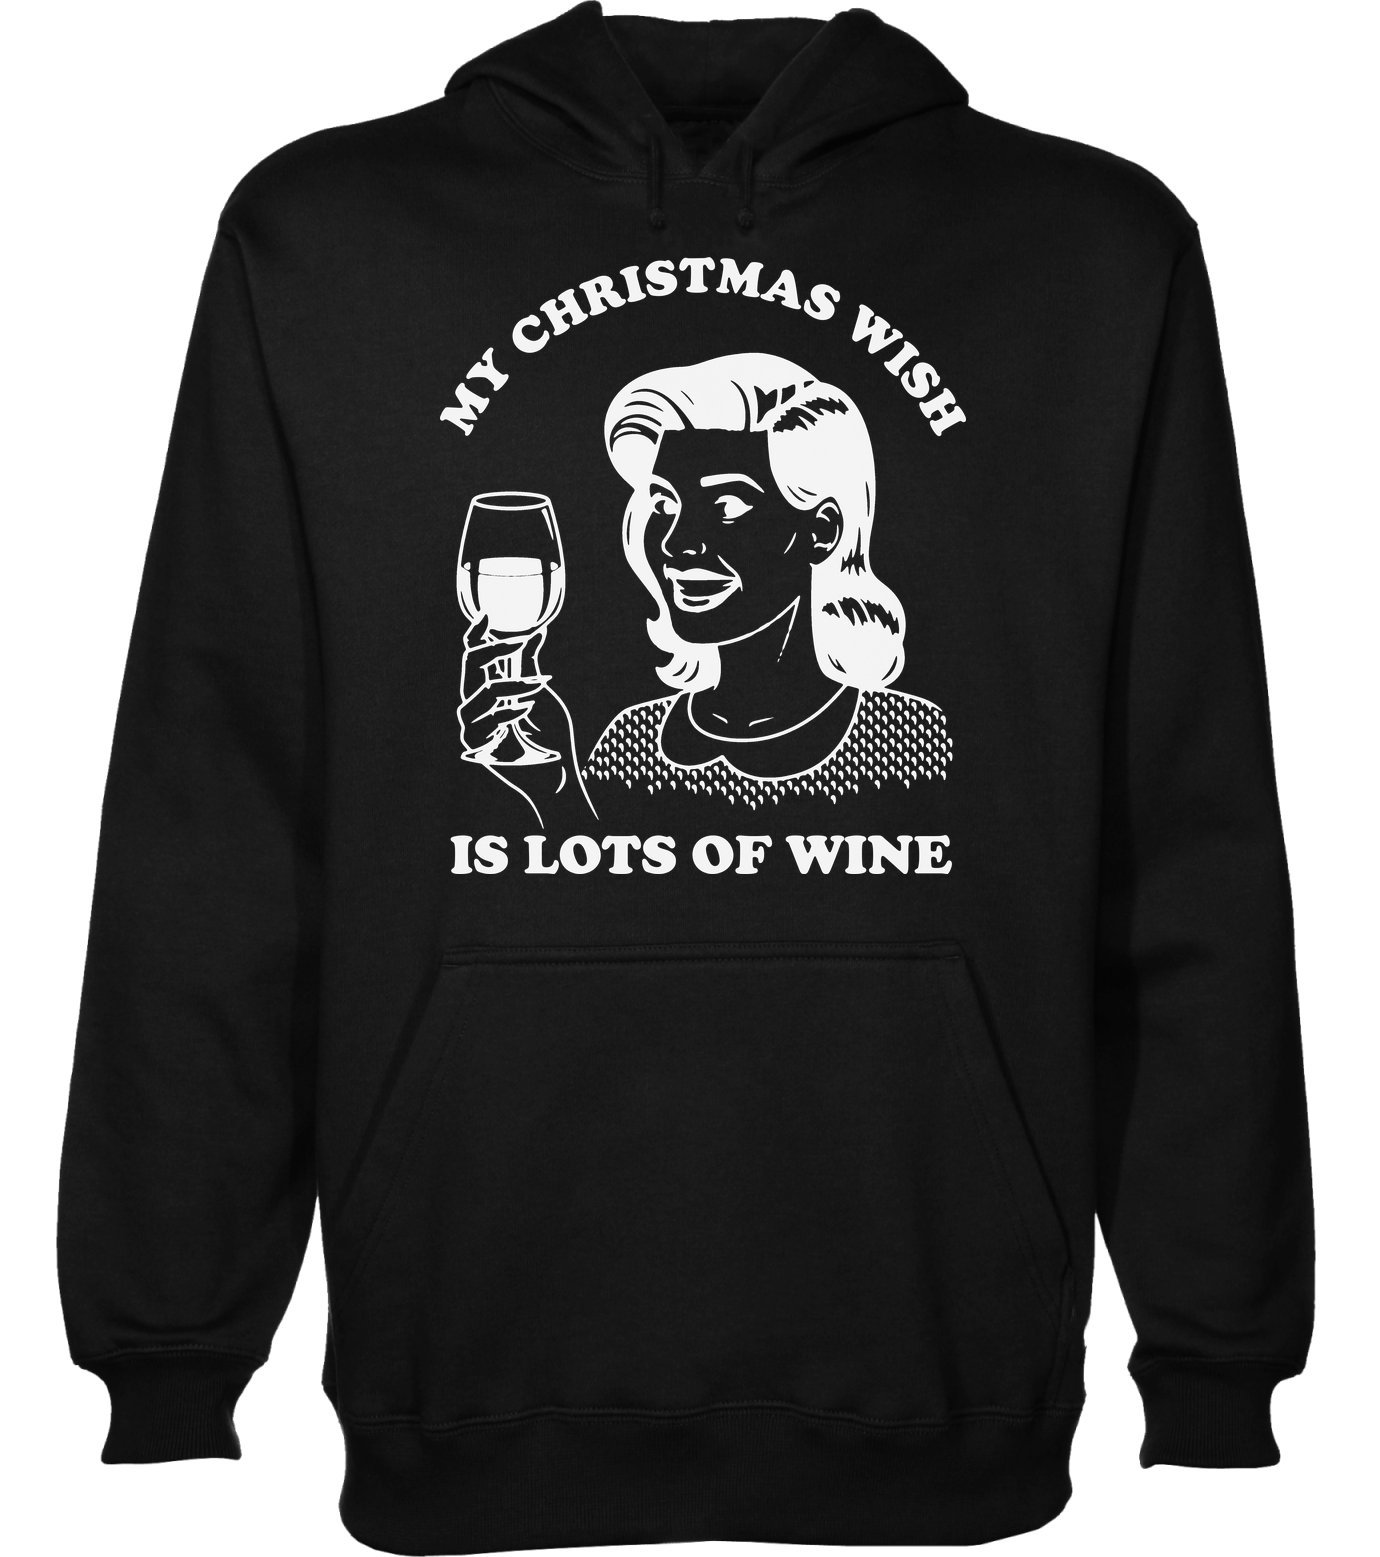 My Christmas Wish is Lots of Wine Vintage Woman with Glass of Wine Men's Hoodie Pullover Extra Large